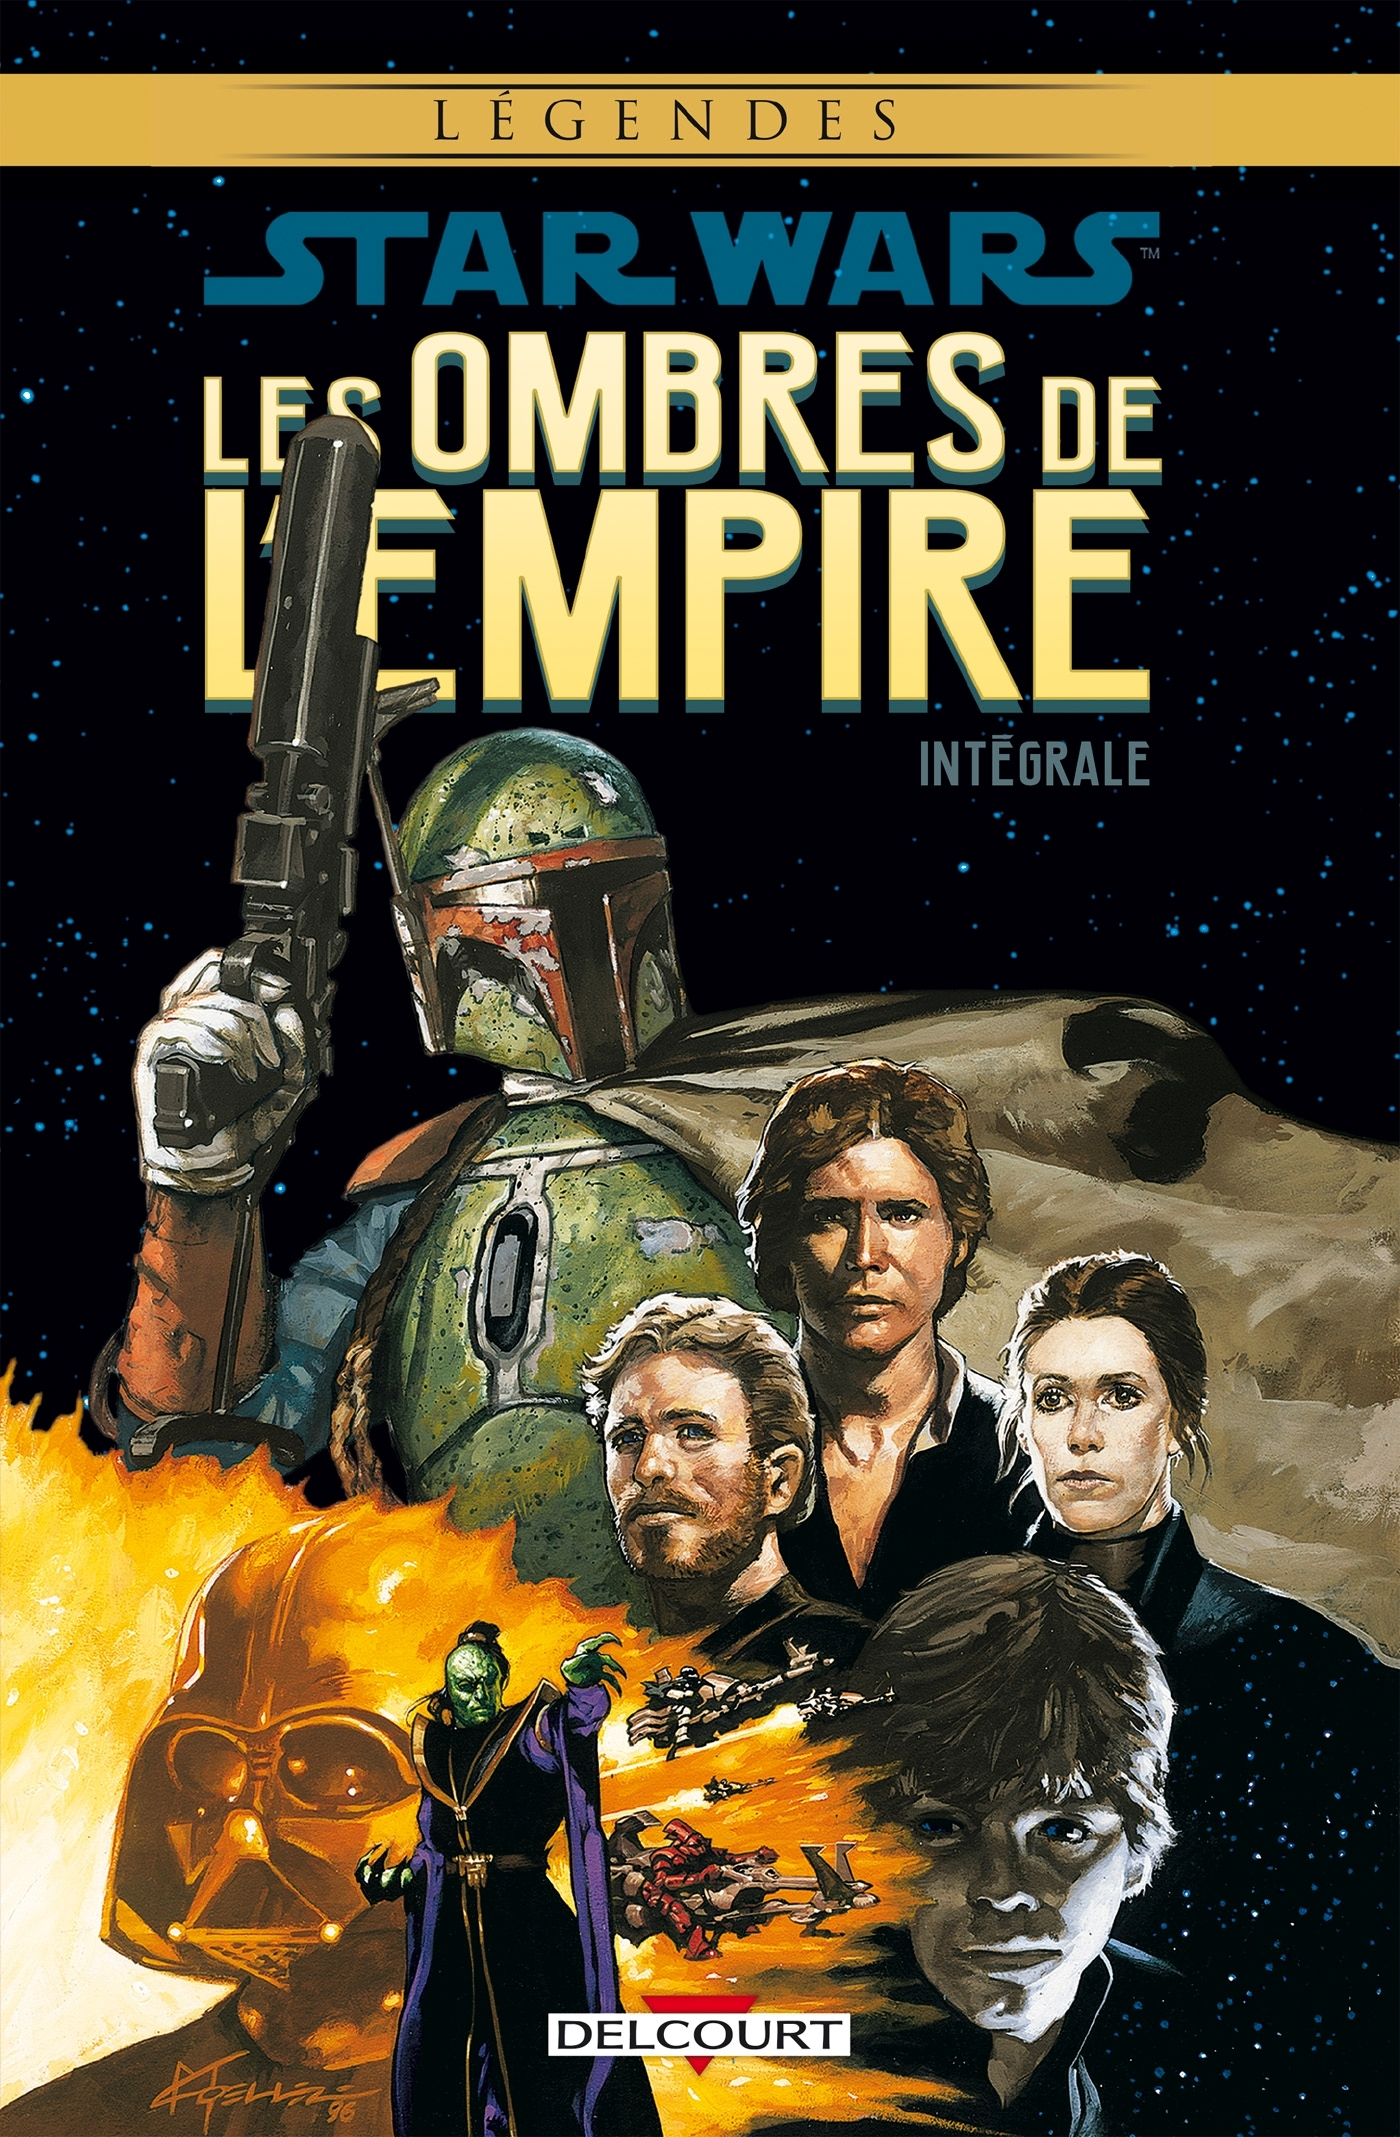 STAR WARS - LES OMBRES DE L'EMPIRE - INTEGRALE